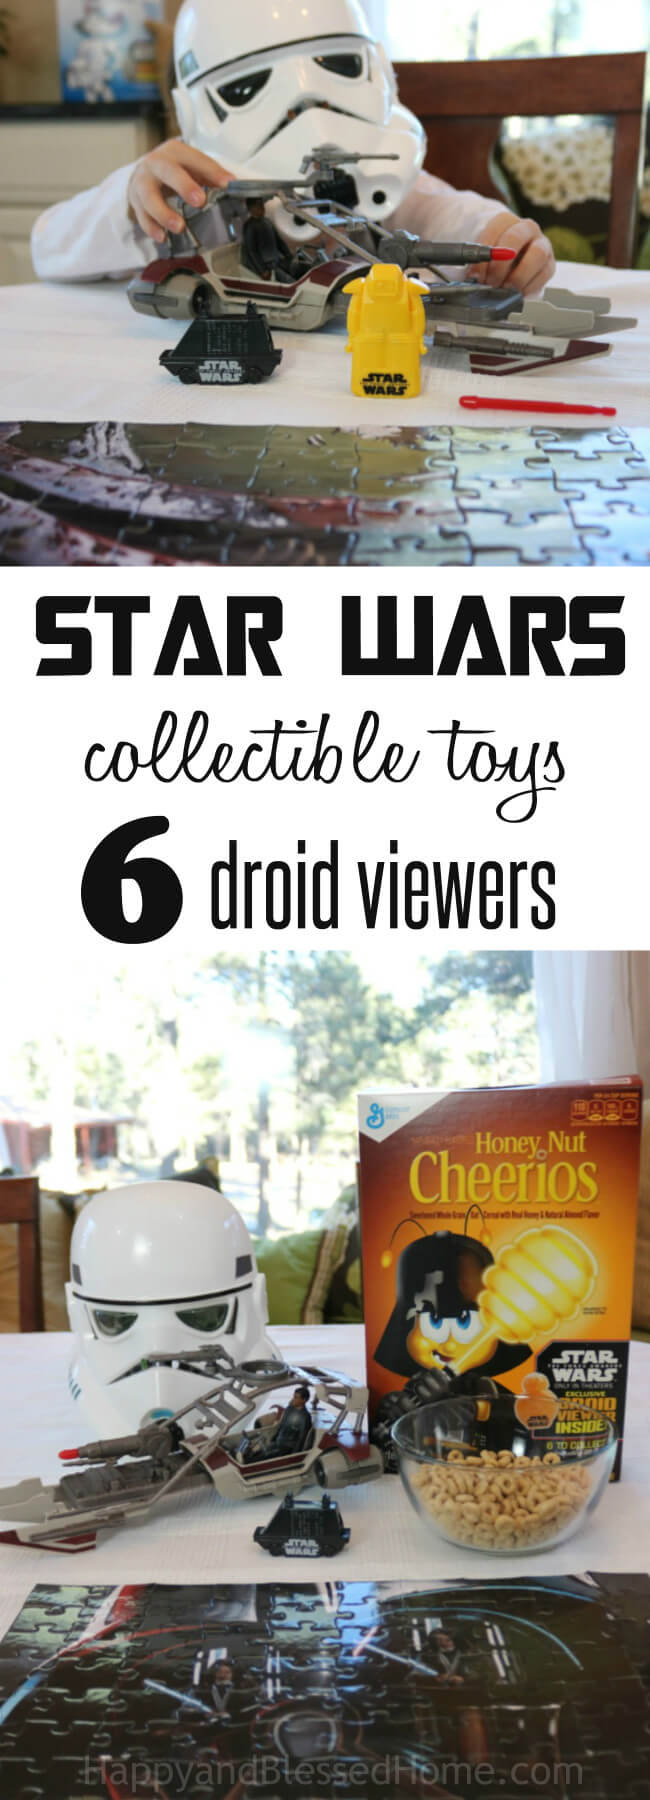 Learn how you can collect Star Wars The Force Awakens 6 Driod Viewers with details on the names and colors of the driods